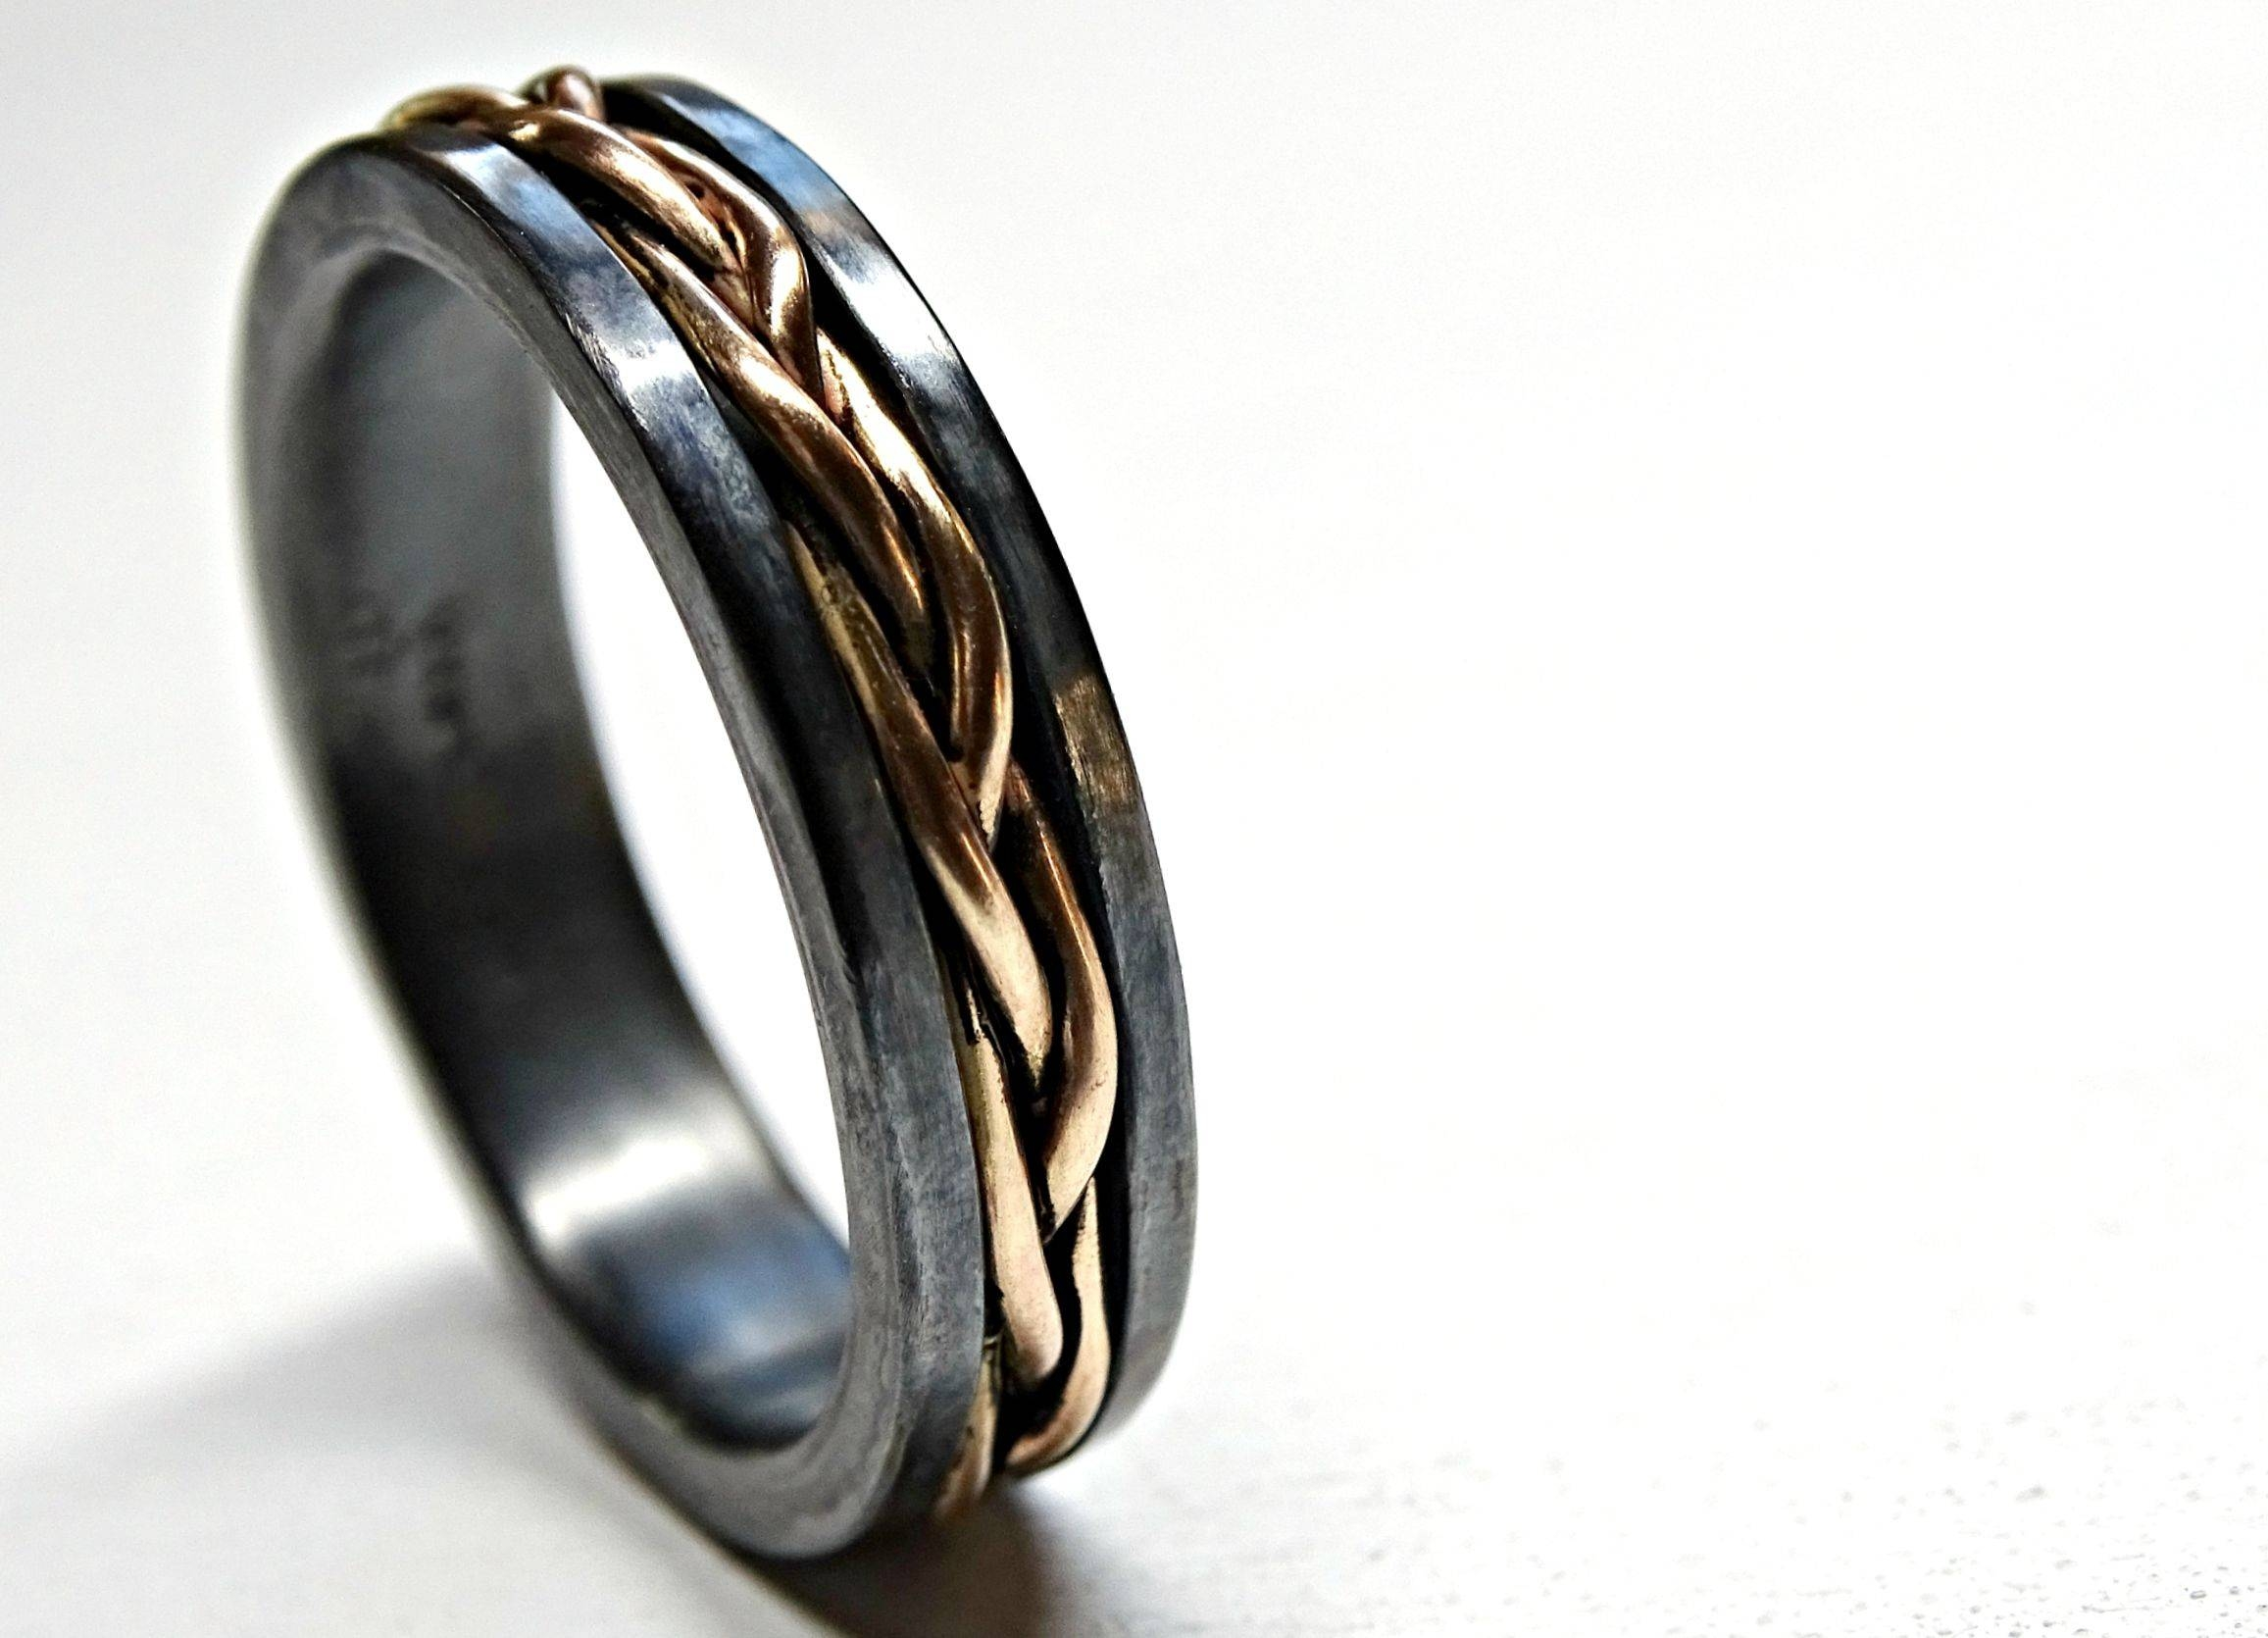 Buy A Hand Crafted Mens Viking Wedding Band, Celtic Promise Ring With Regard To Viking Wedding Bands (View 11 of 15)